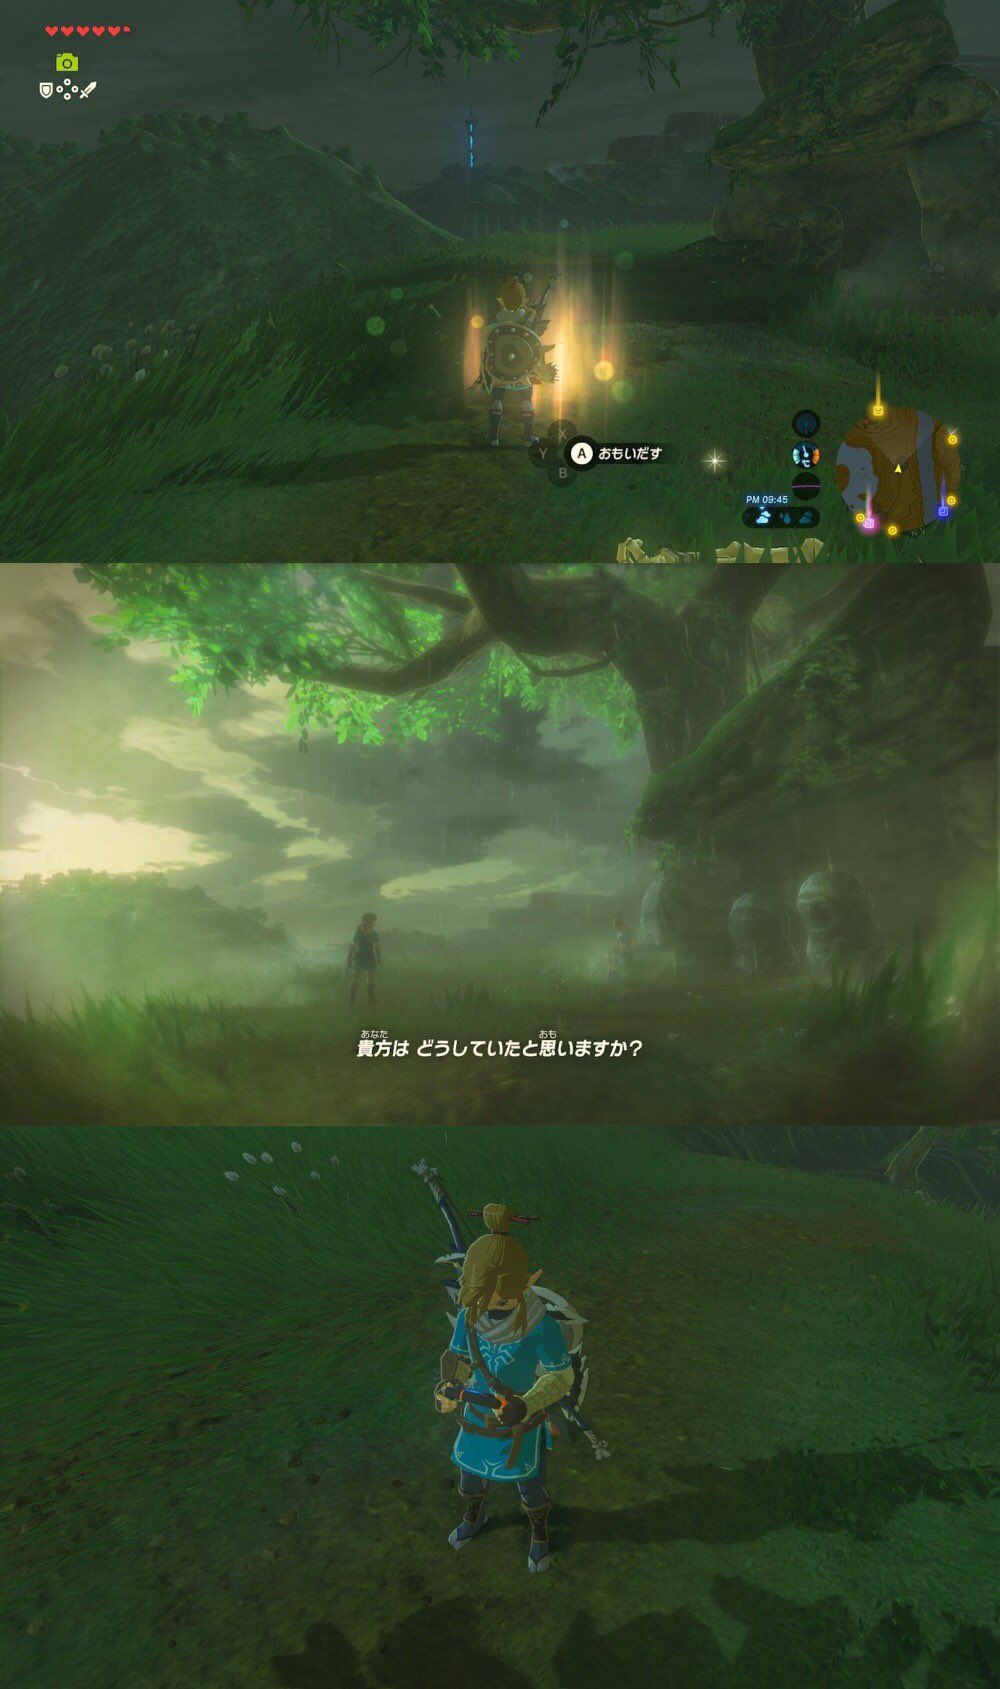 おもいだす #ゼルダの伝説 #BreathoftheWild #NintendoSwitch https://t.co/ztIIAPVOnF